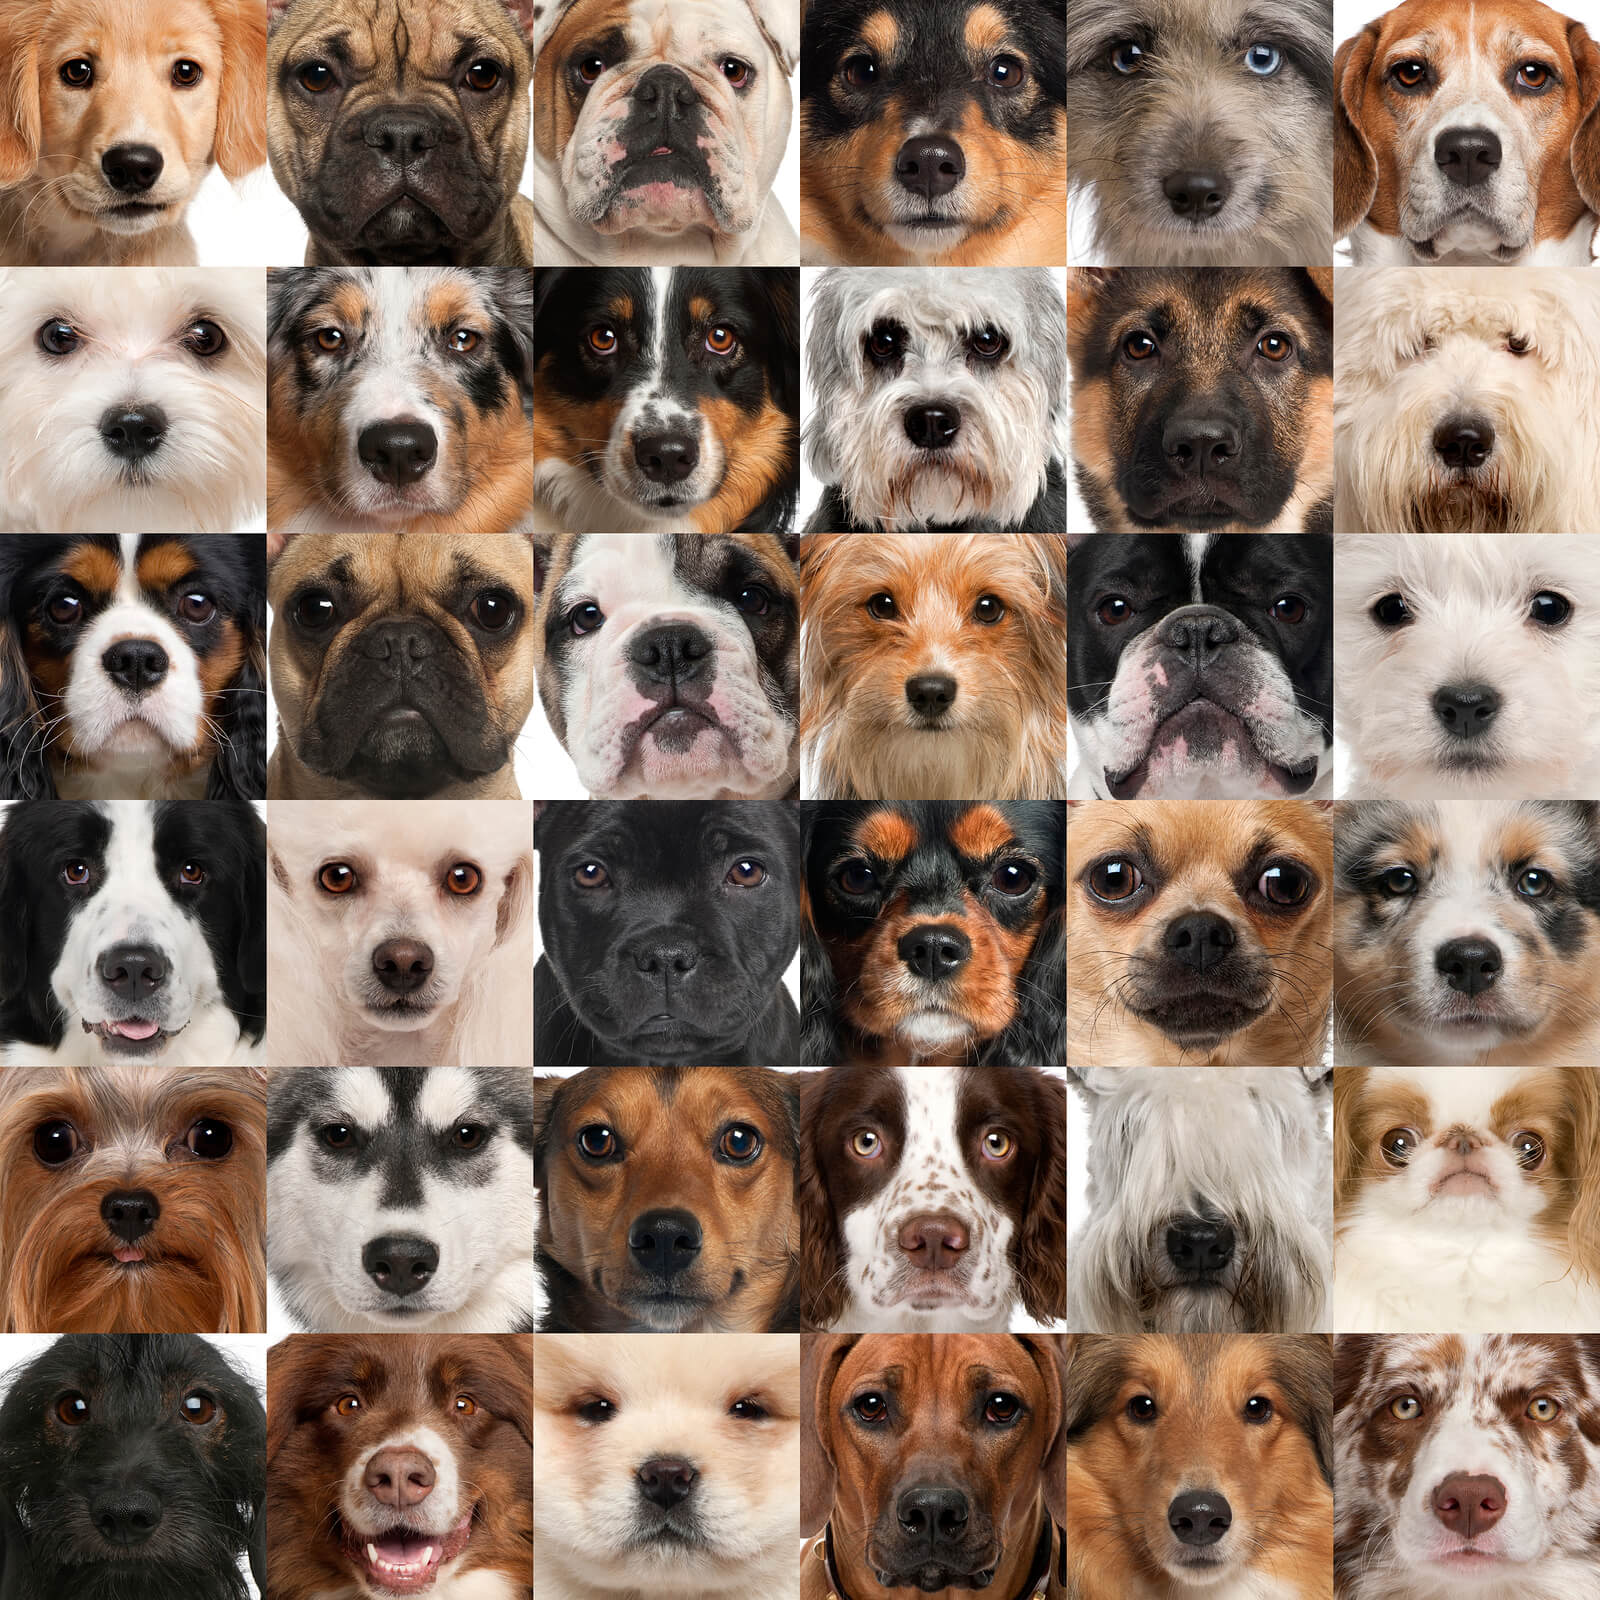 faces of dogs from several breeds